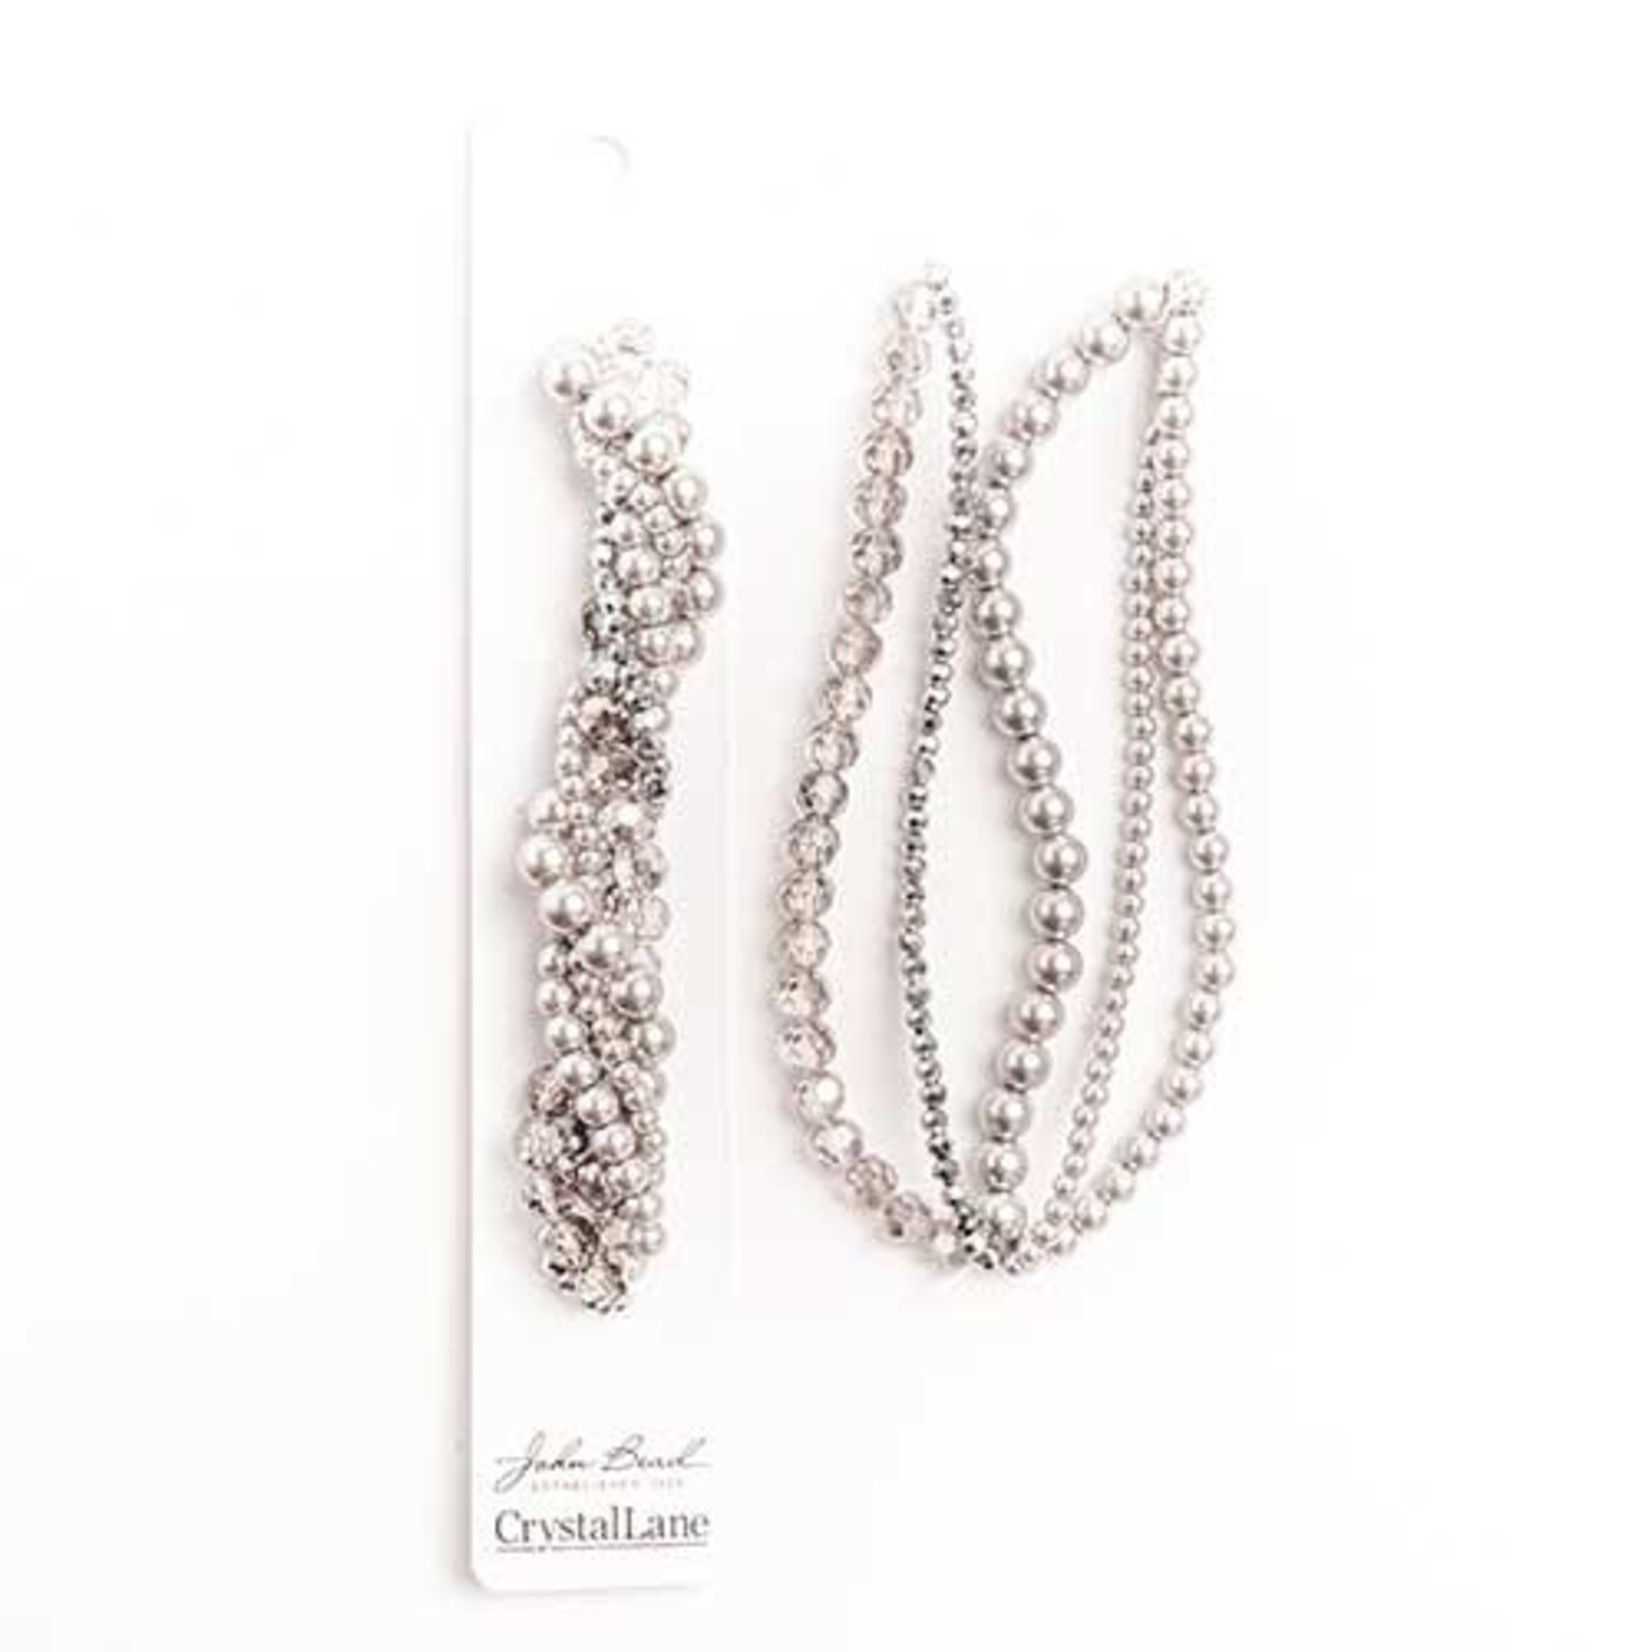 Crystal Lane Twisted Bead Strands Silver Brunia